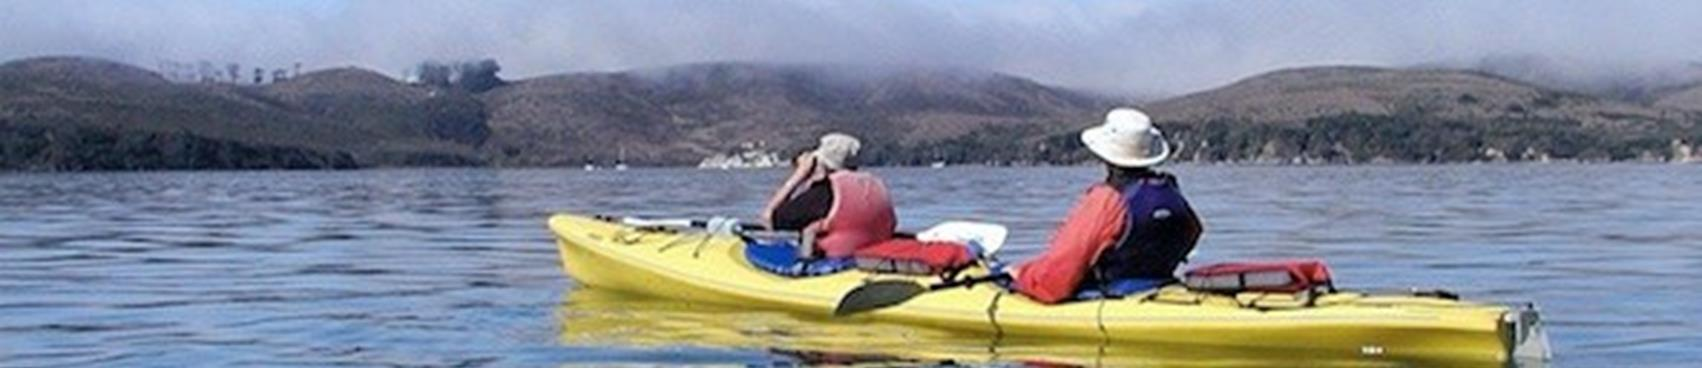 Purchase Tickets to Kayaking and wine on Tamales Bay at Halleck Vineyard on CellarPass